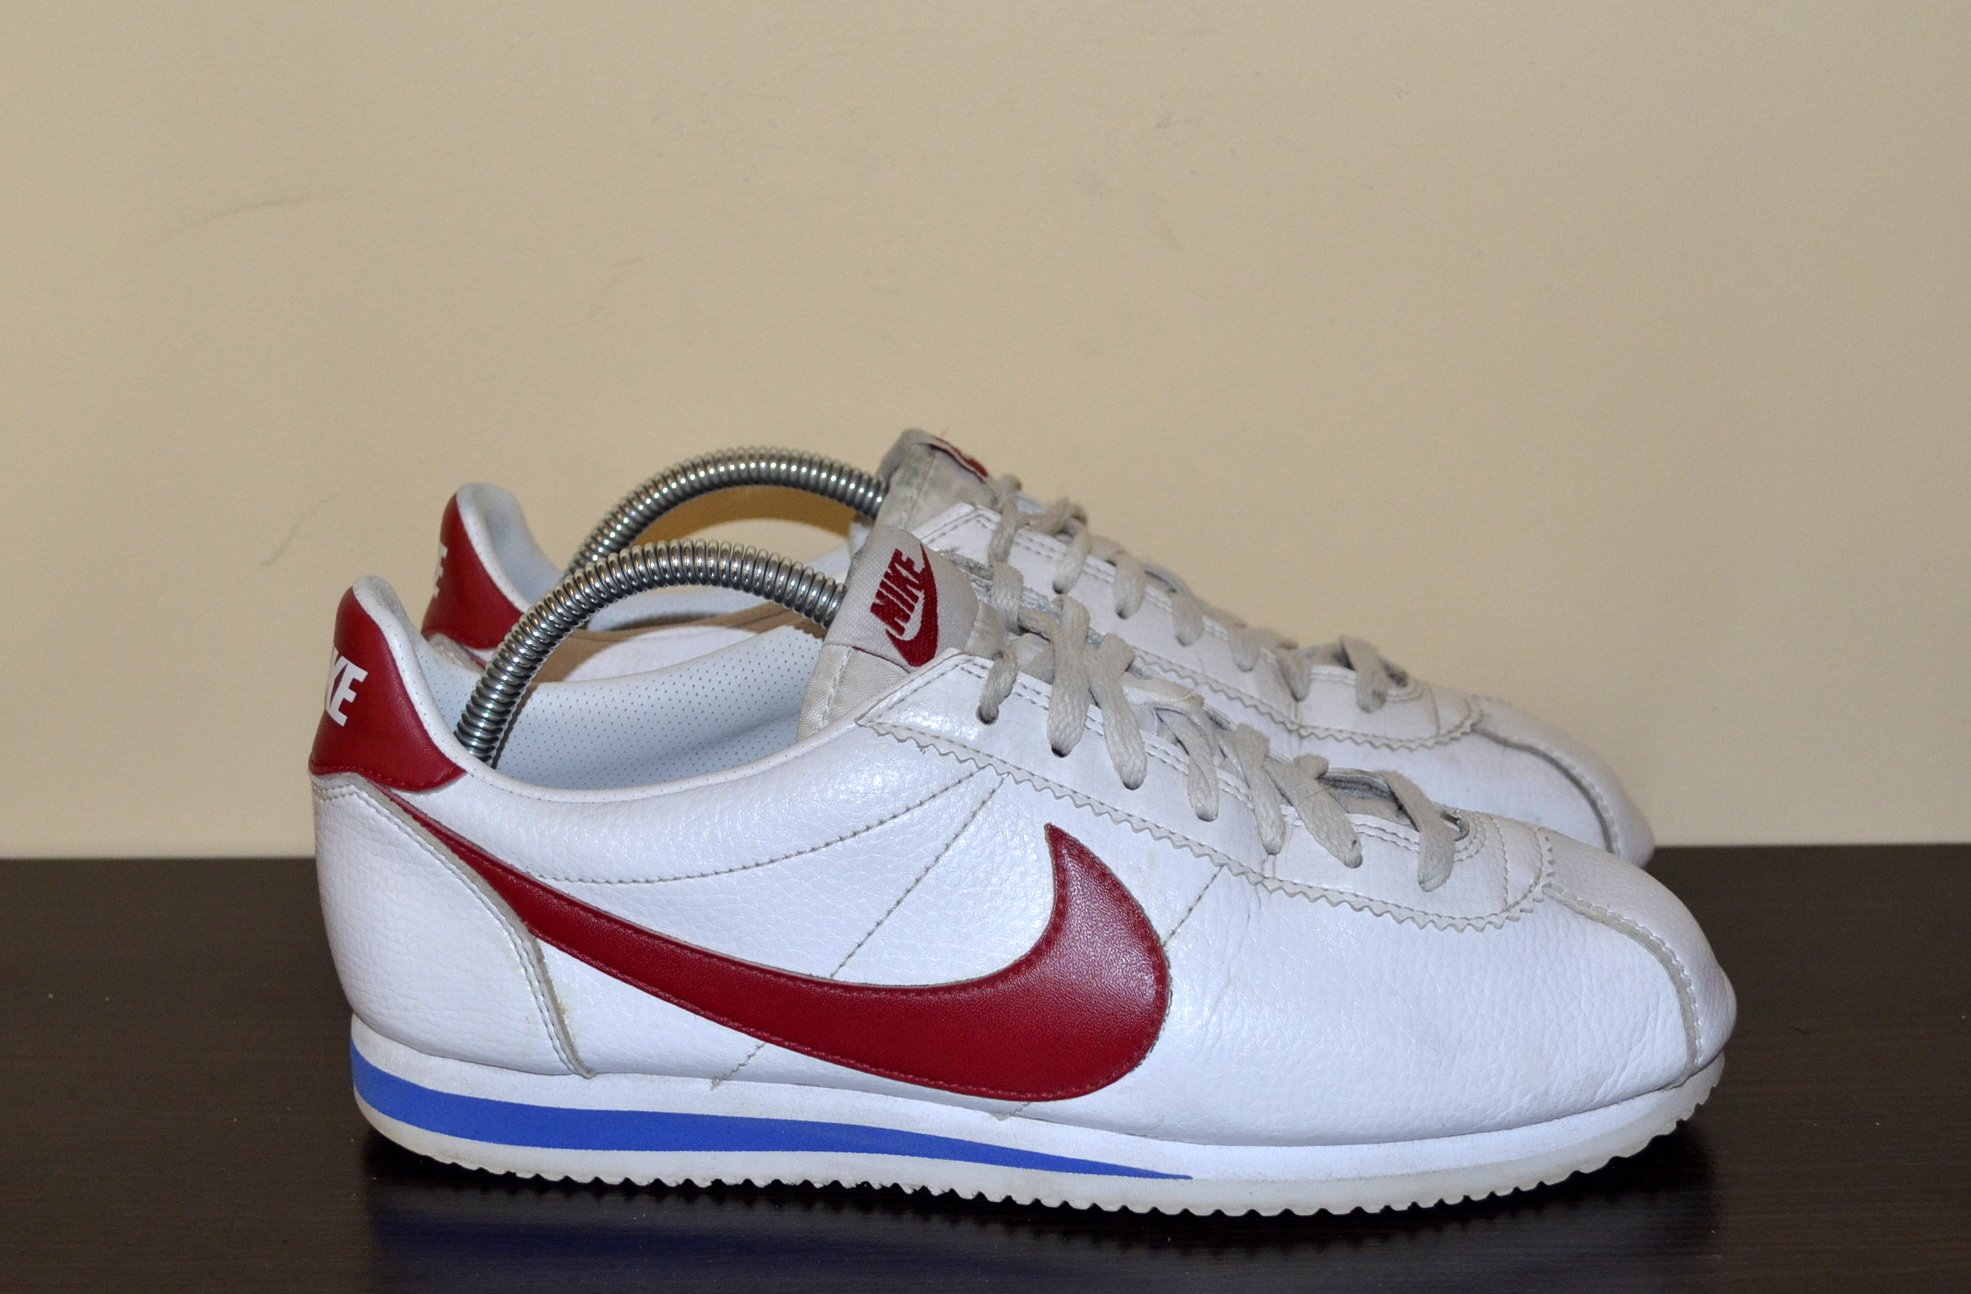 new style fe81a 0b0a6 ... coupon code for buty mskie nike classic cortez forrest gump 42 r fd231  00f41